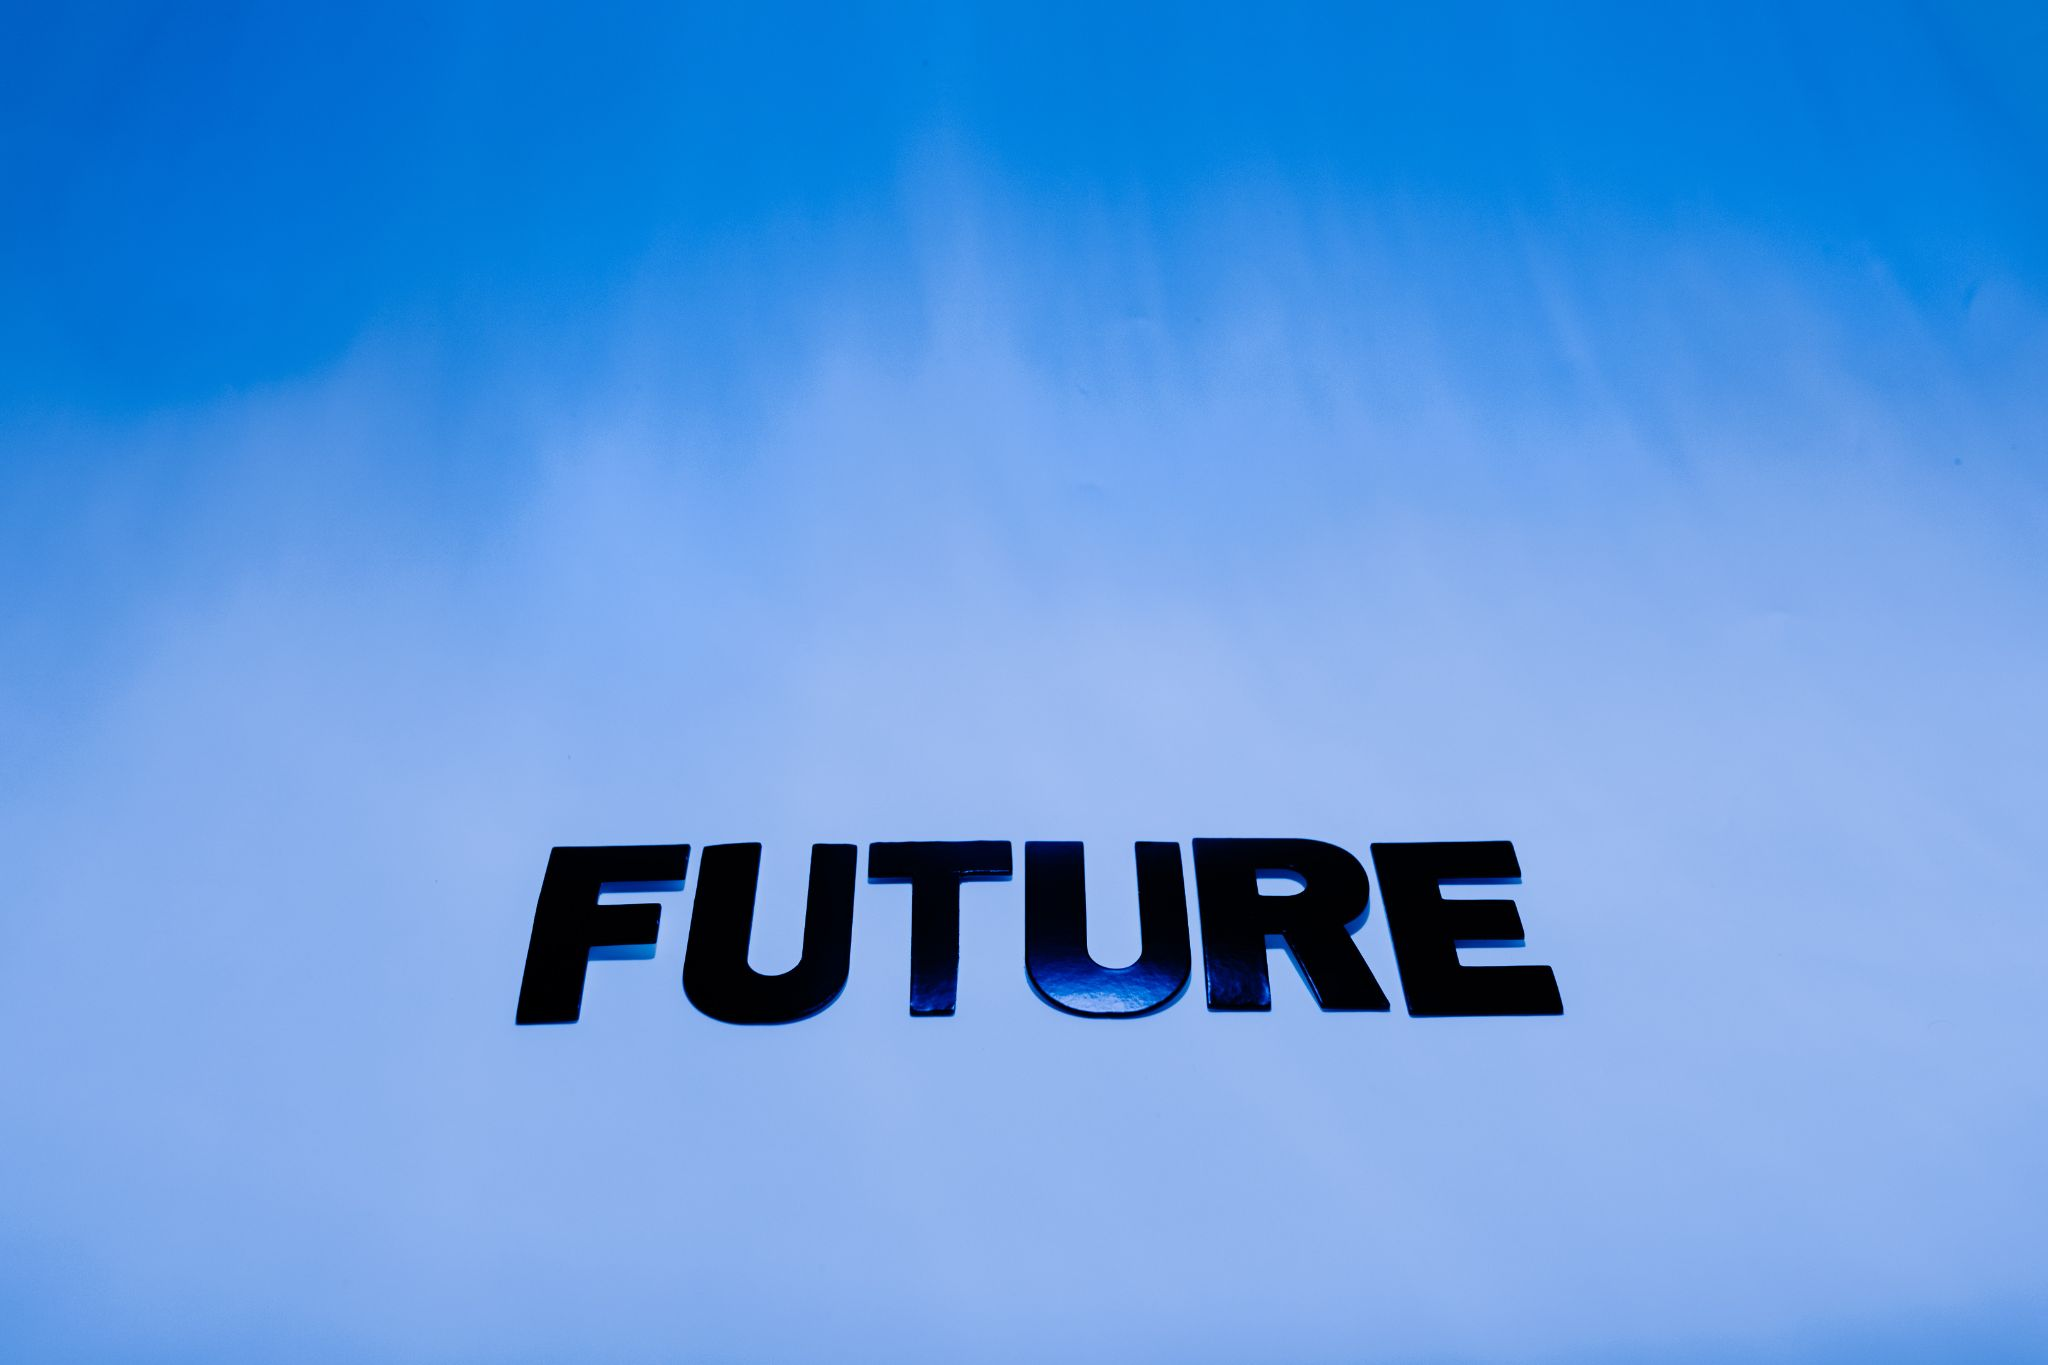 a-vision-to-the-future-of-academic-publishing